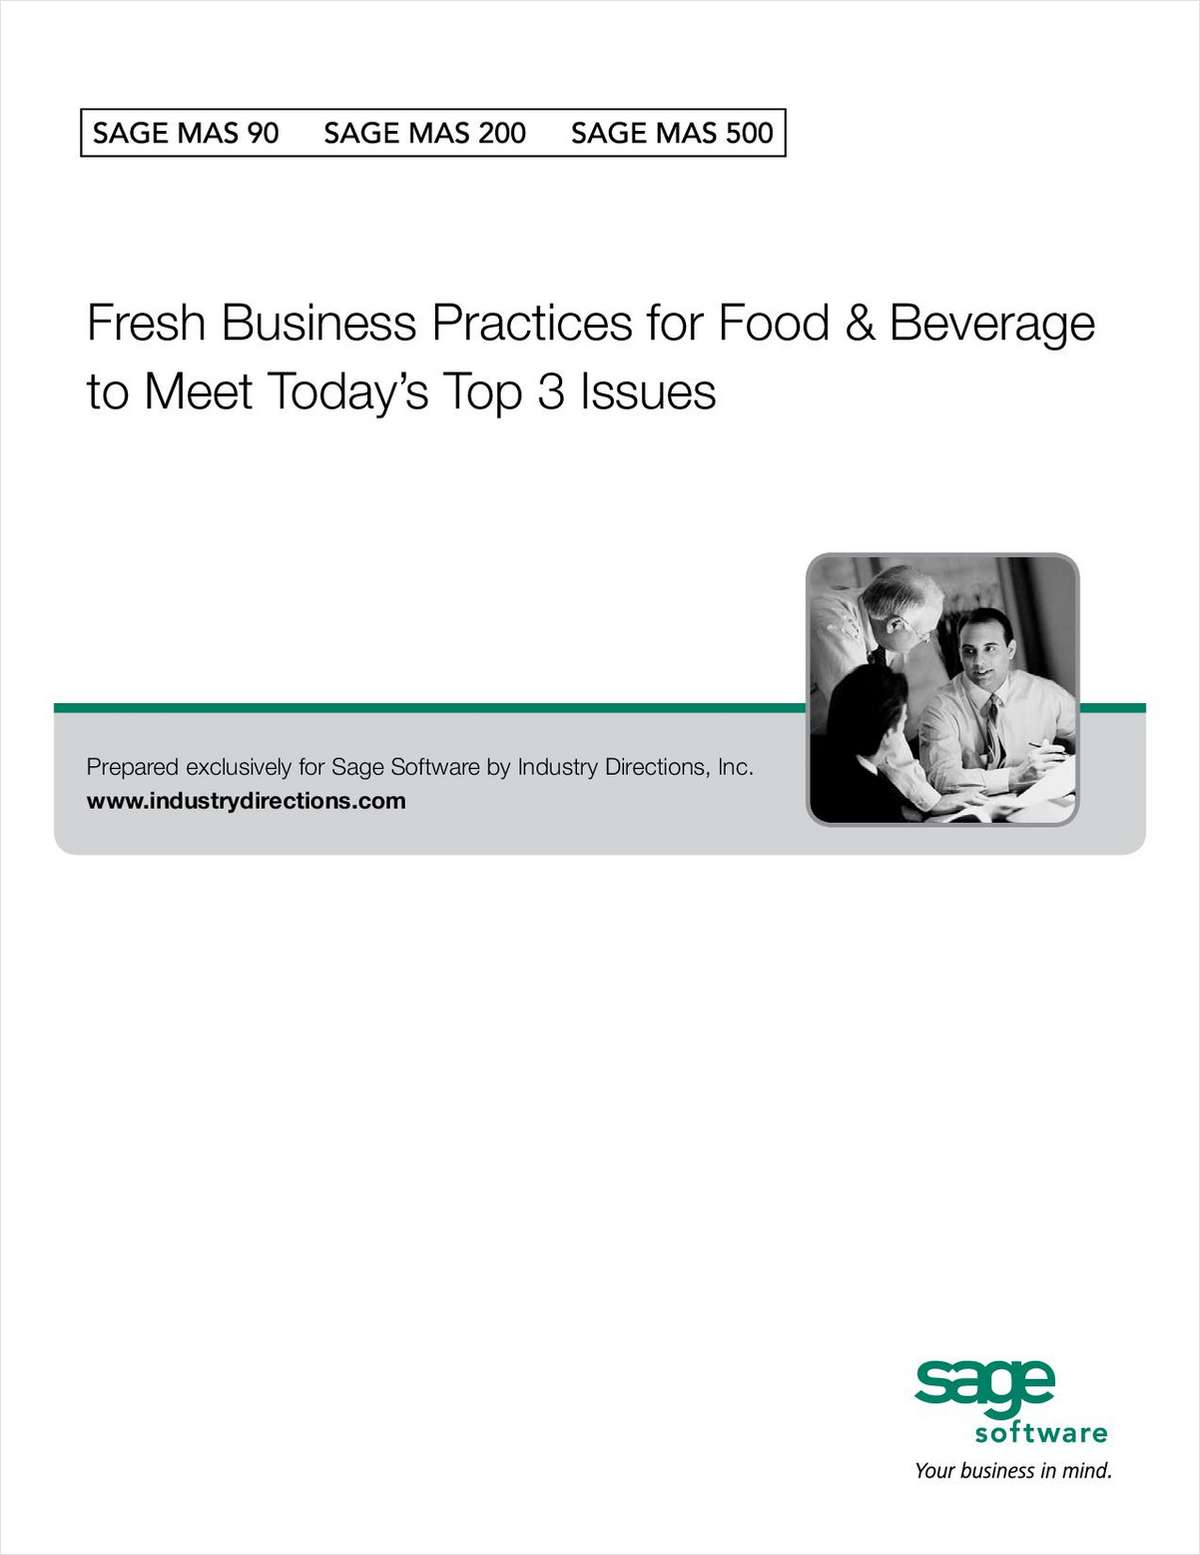 Fresh Business Practices for Food & Beverage to Meet Today's Top 3 Issues